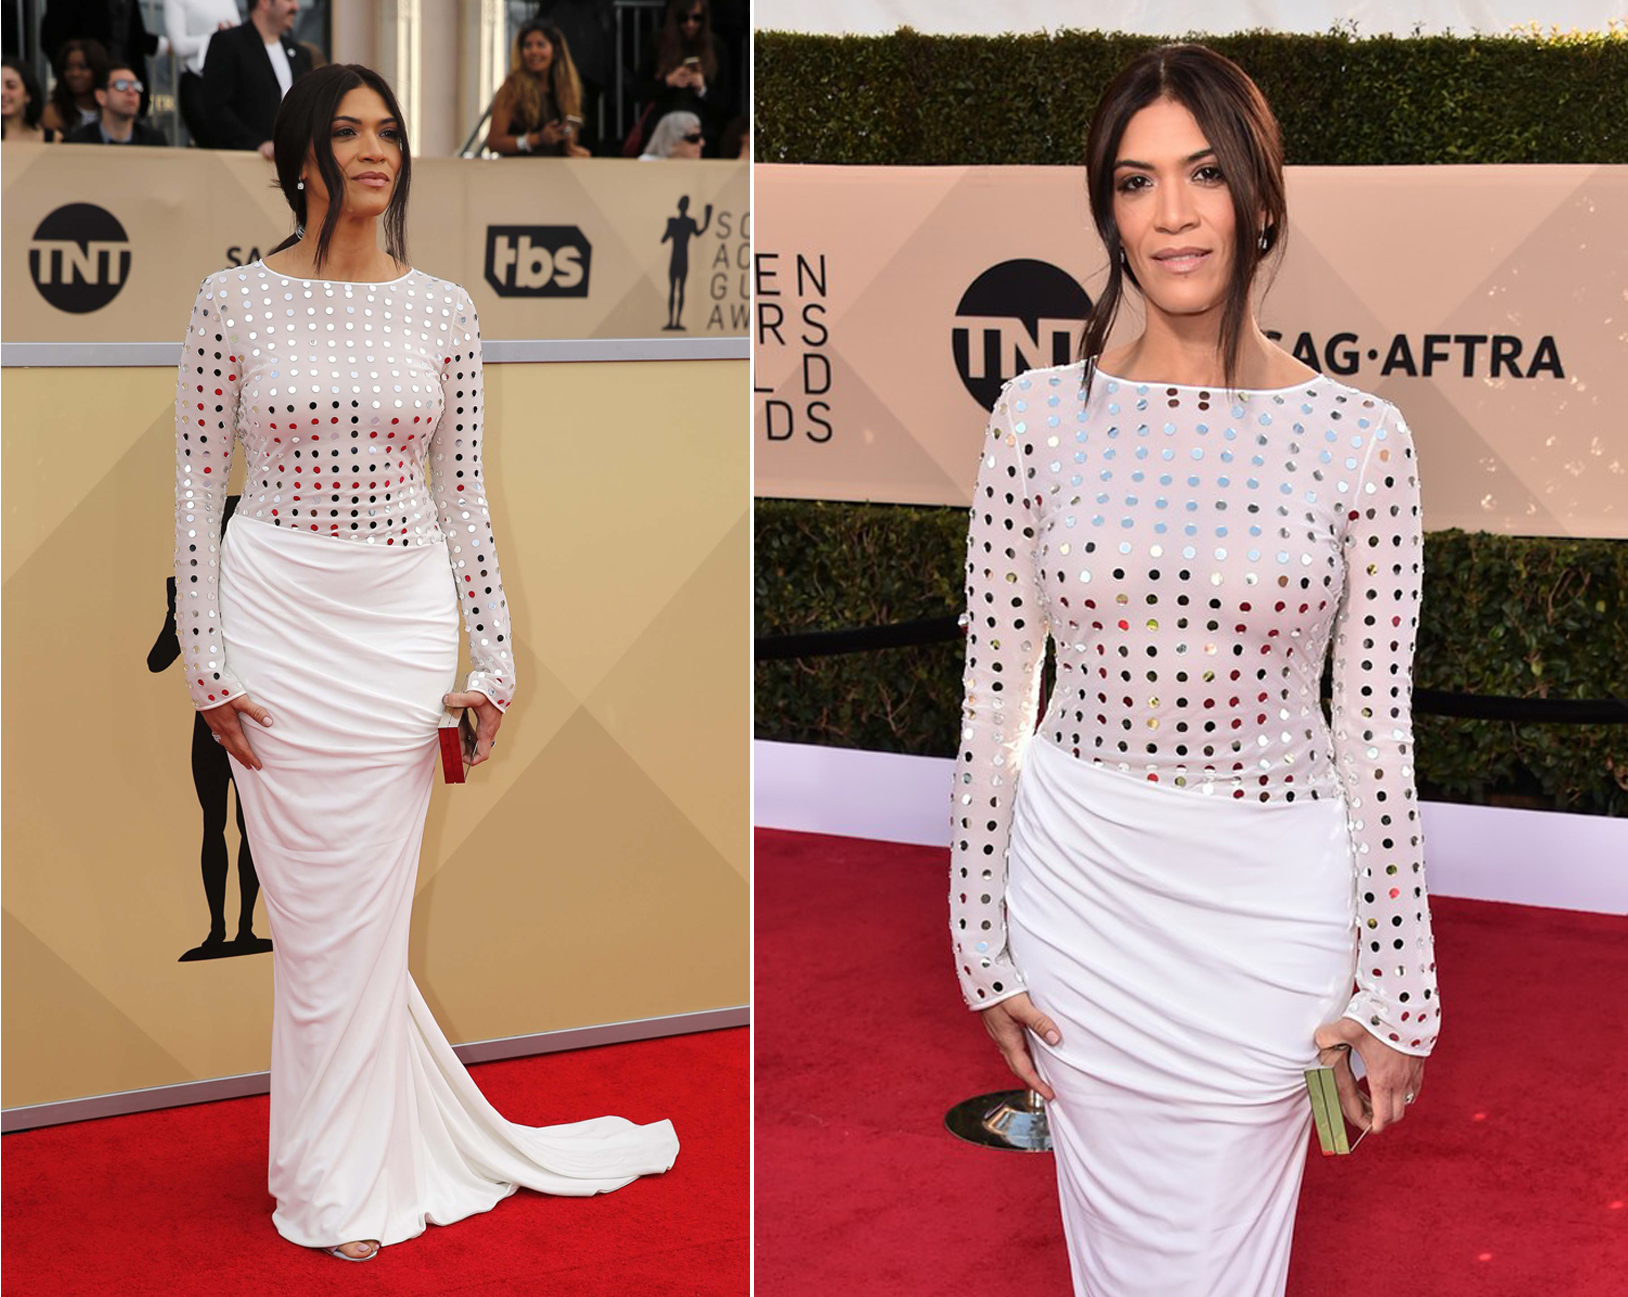 The beautiful Laura Gomez looking fabulous at the Sag Awards wearing CD Greene gown and bag,